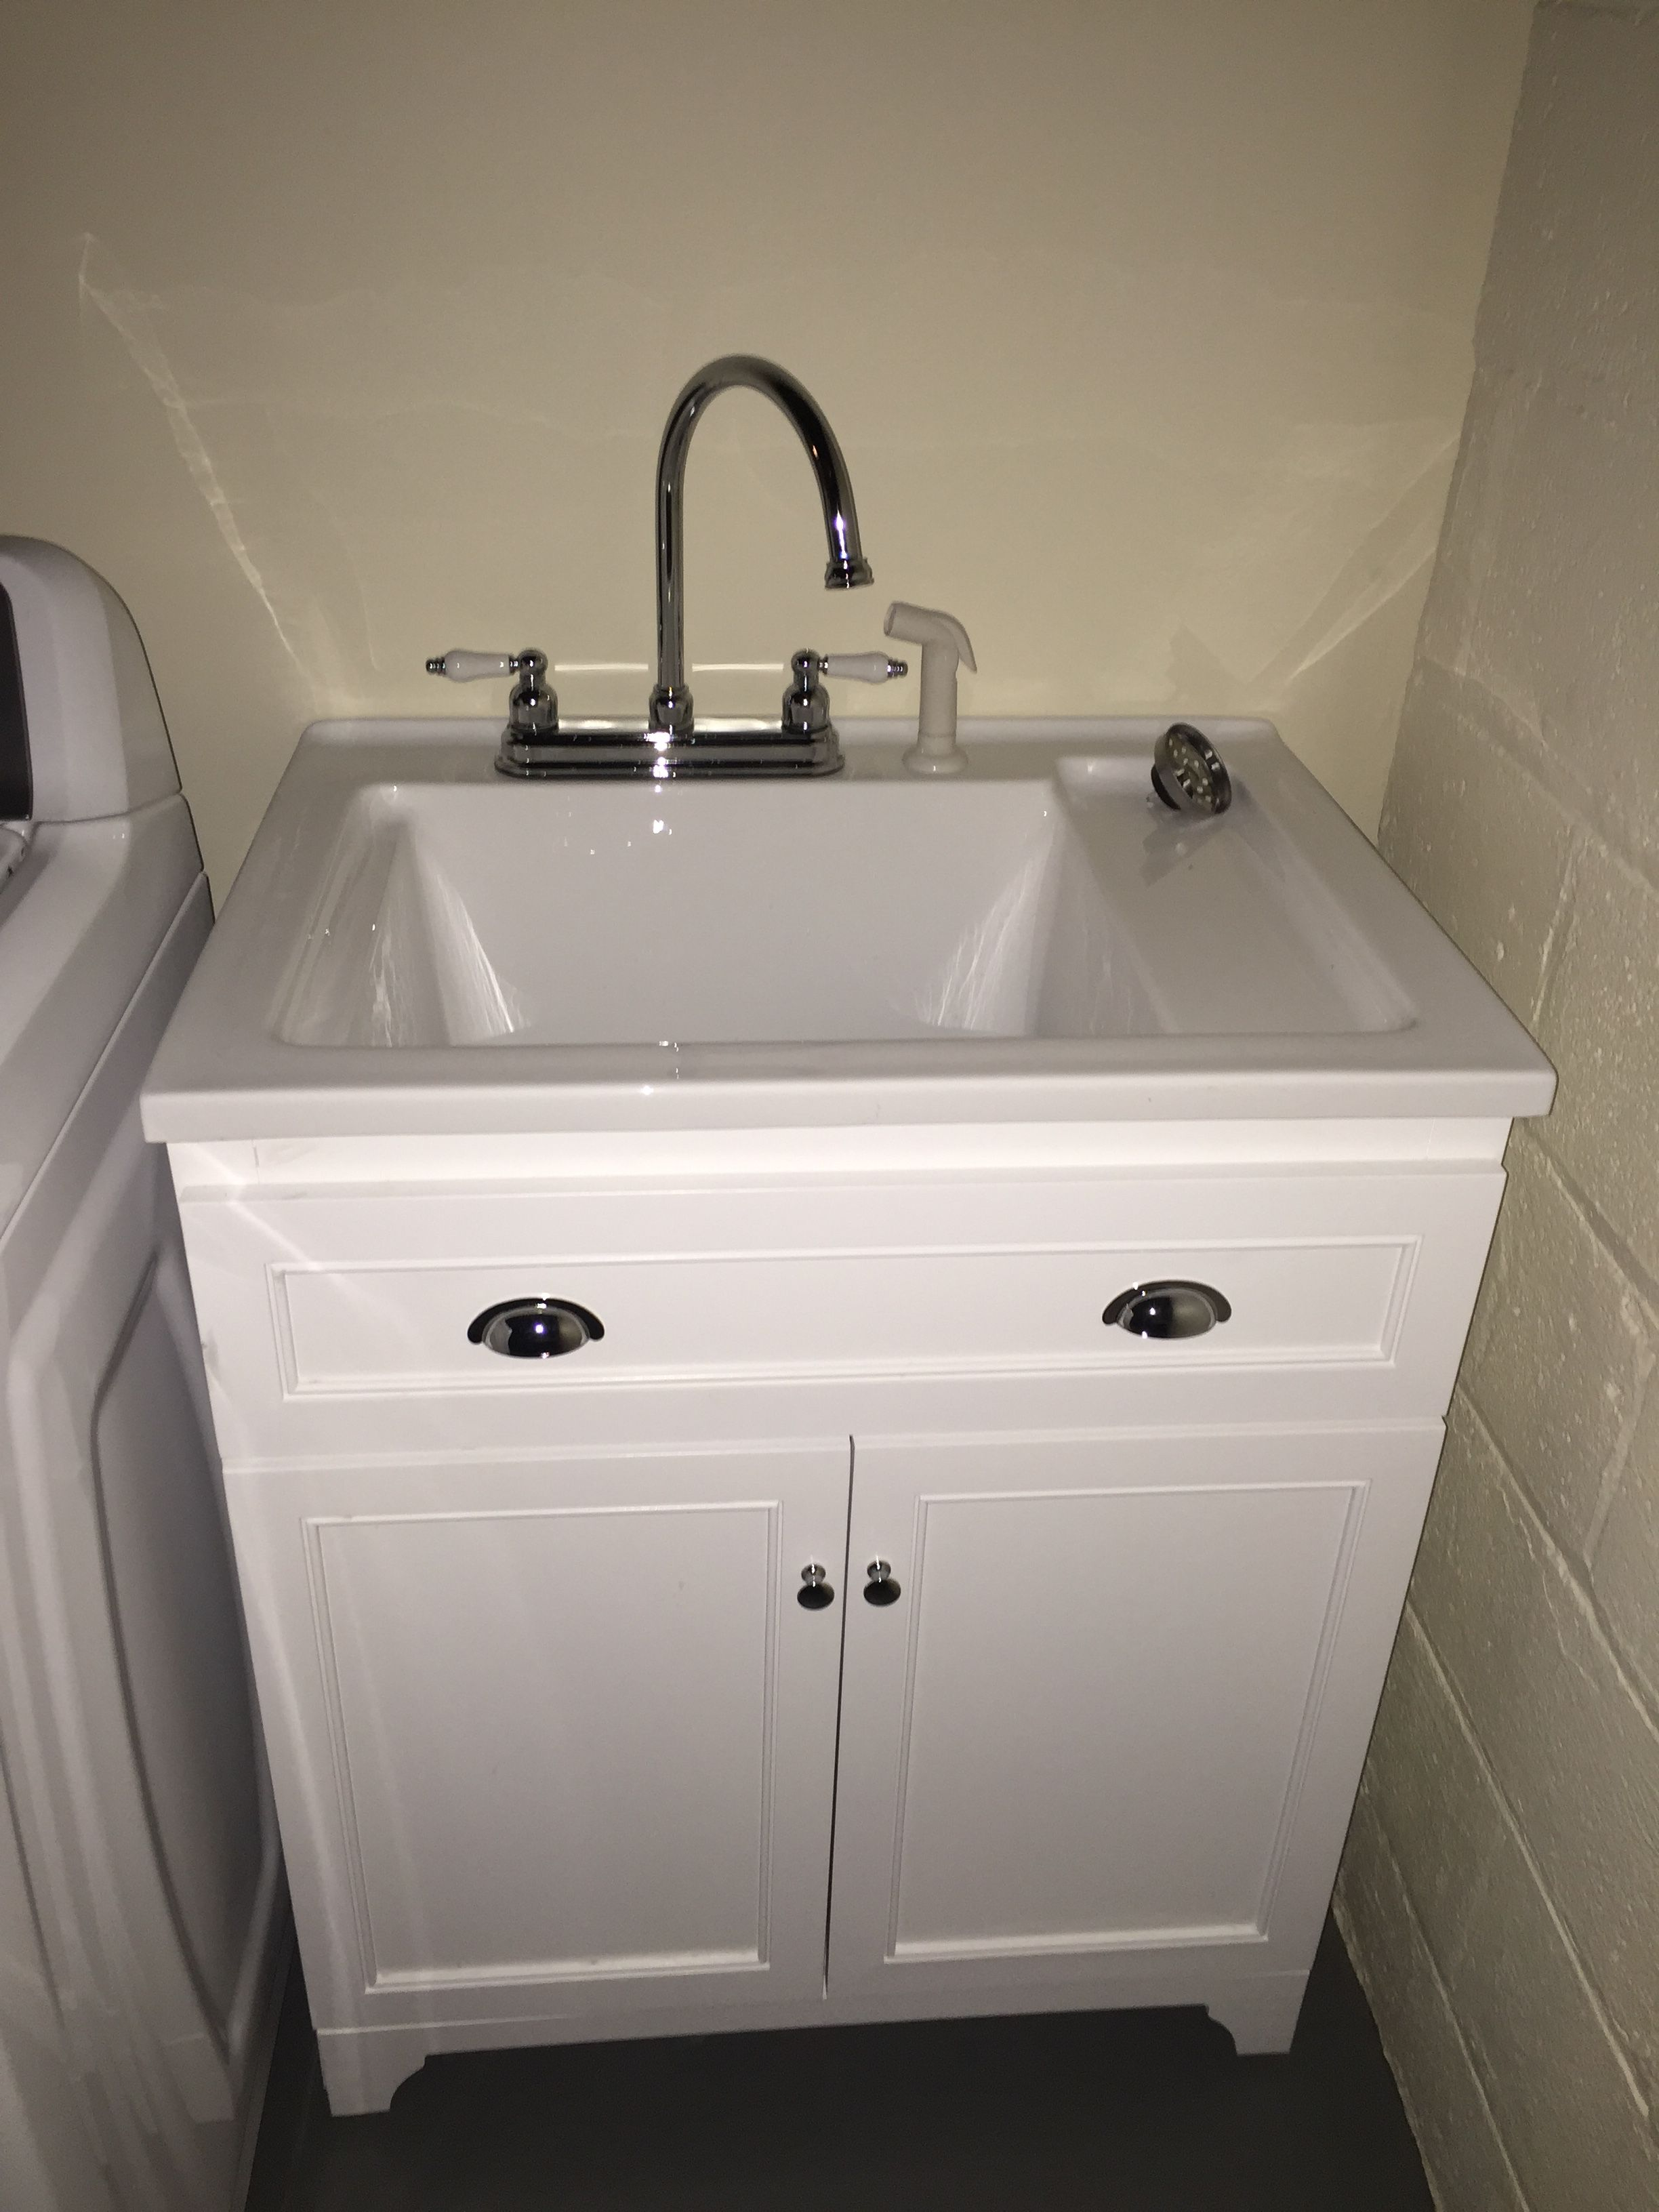 Basement Laundry Room Remodel We Installed Track Lighting Washtub With Faucet Painted Walls And C Basement Laundry Room Laundry Room Remodel Room Remodeling